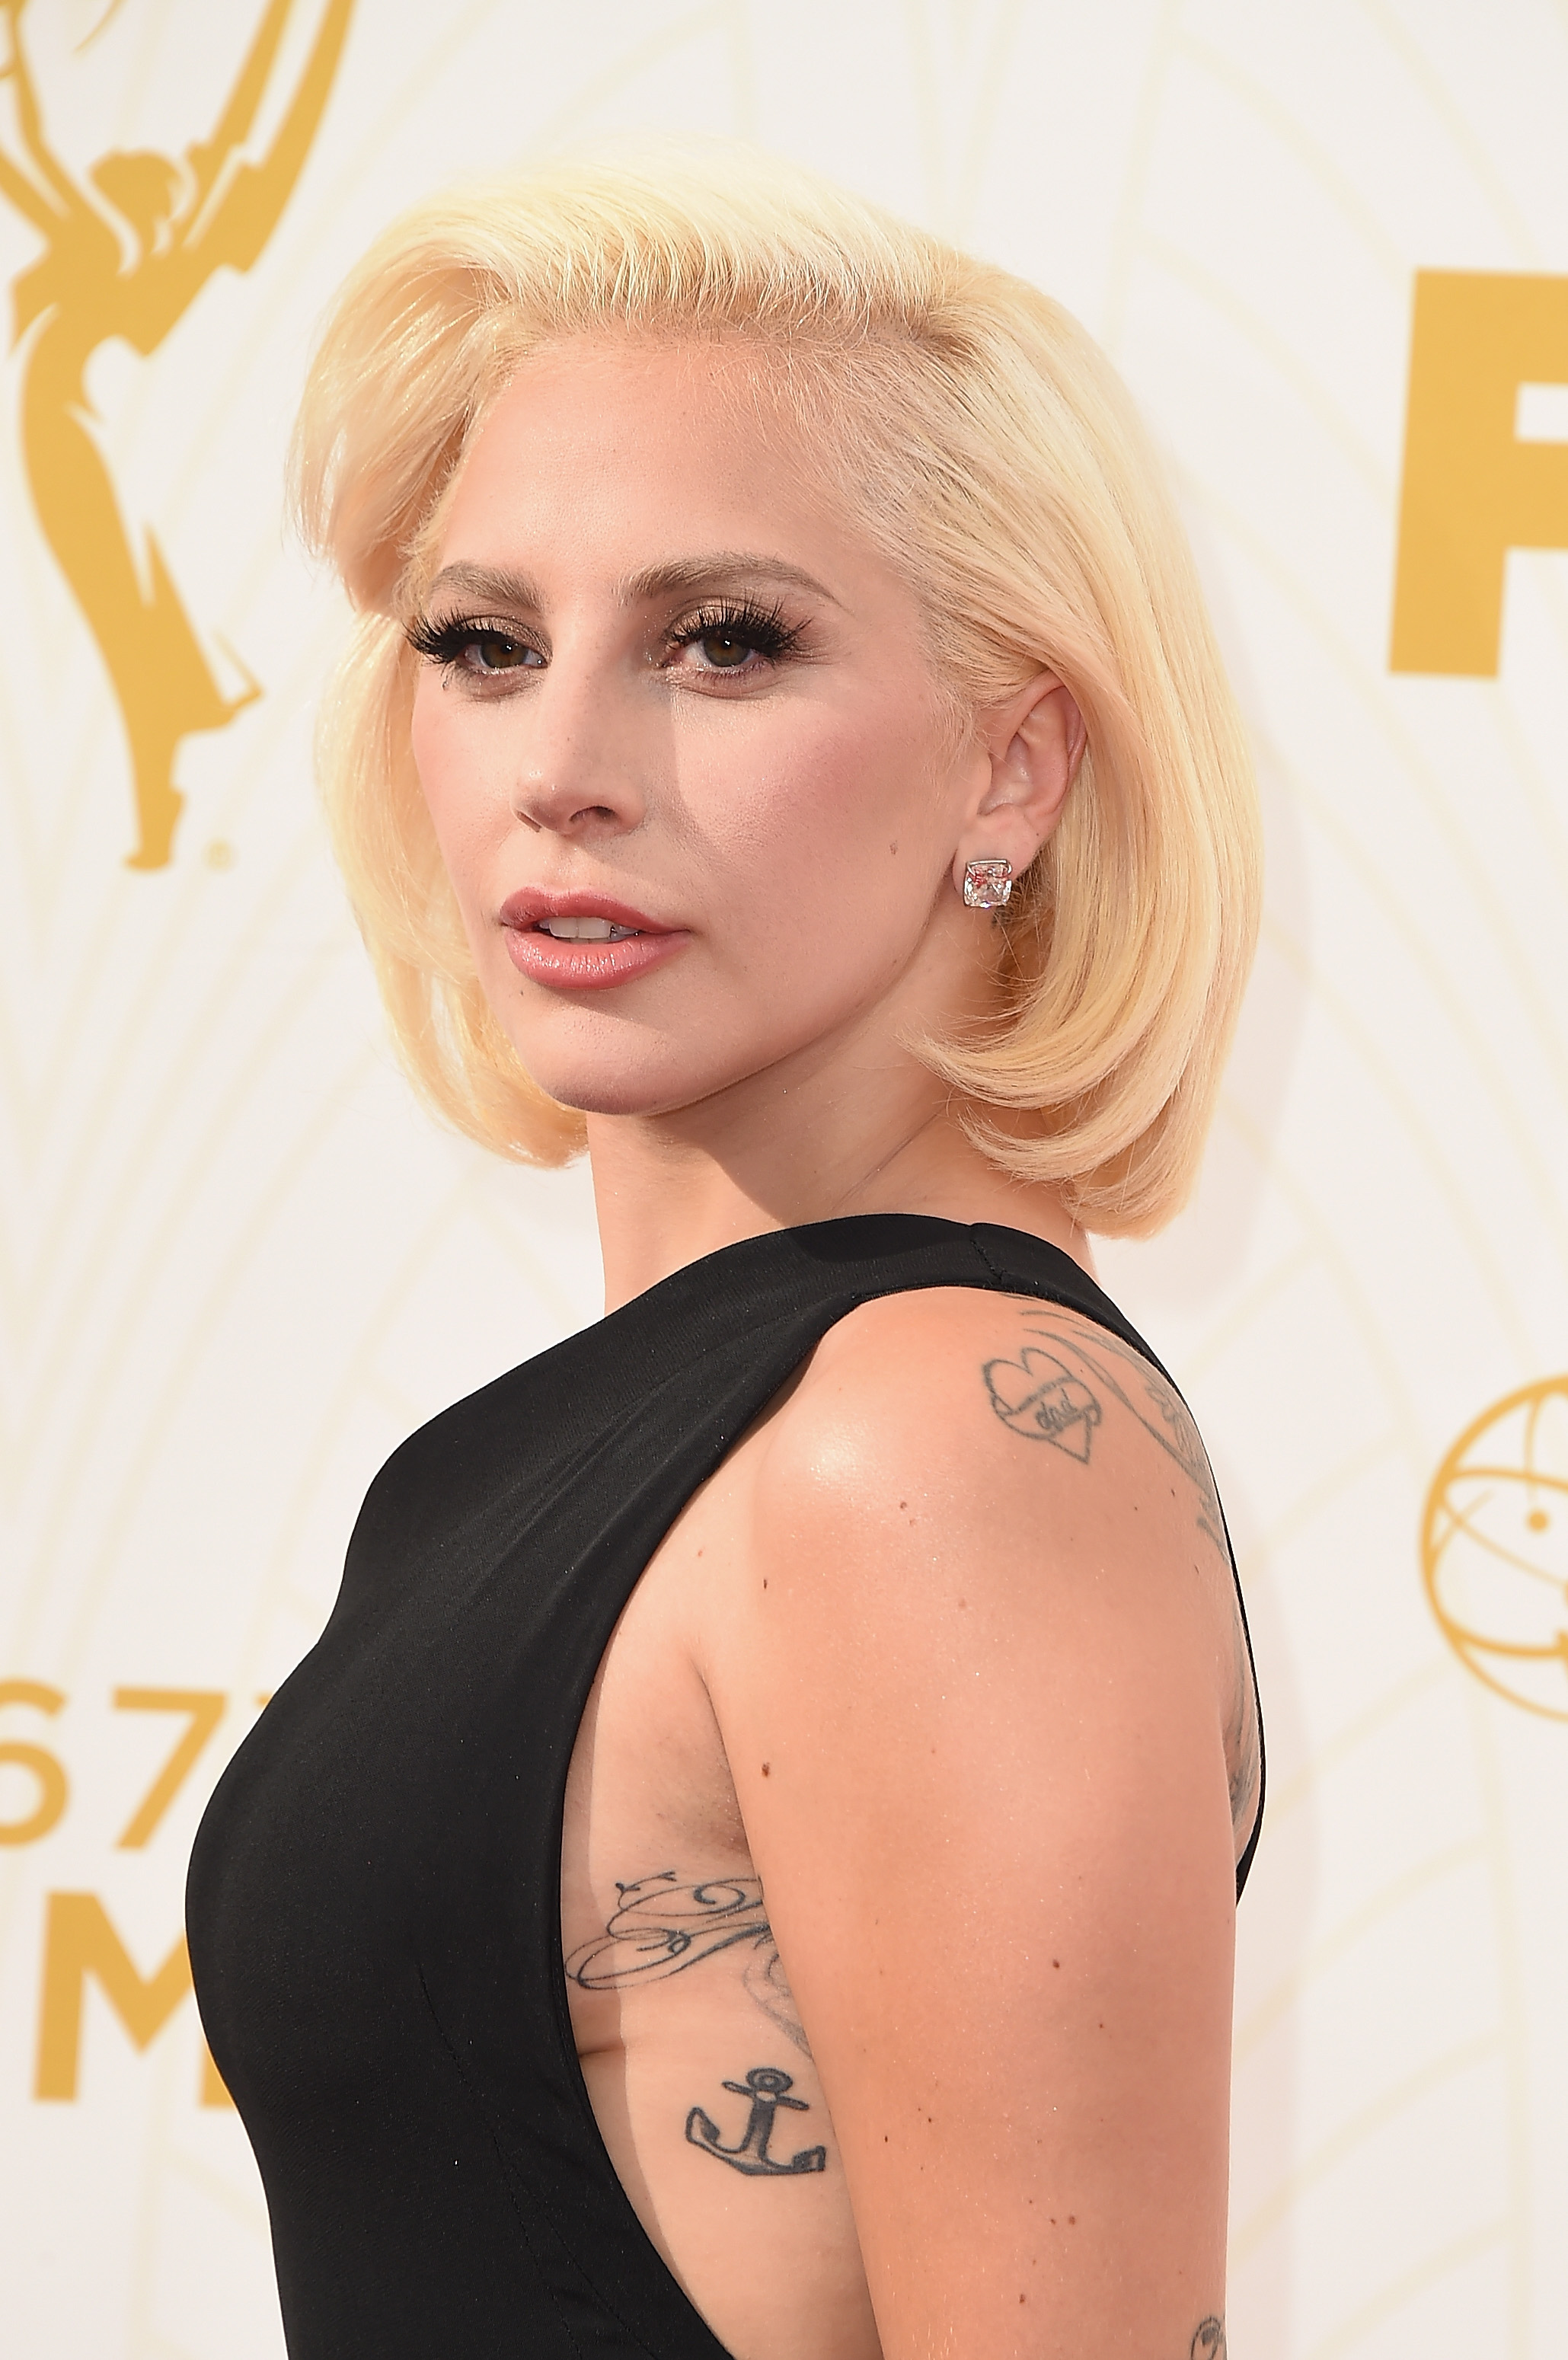 Lady Gaga donned a Grace Kelly inspired do styled by Frederic Aspiras using Matrix Style Link products.  Photo Credit: Steve Granitz